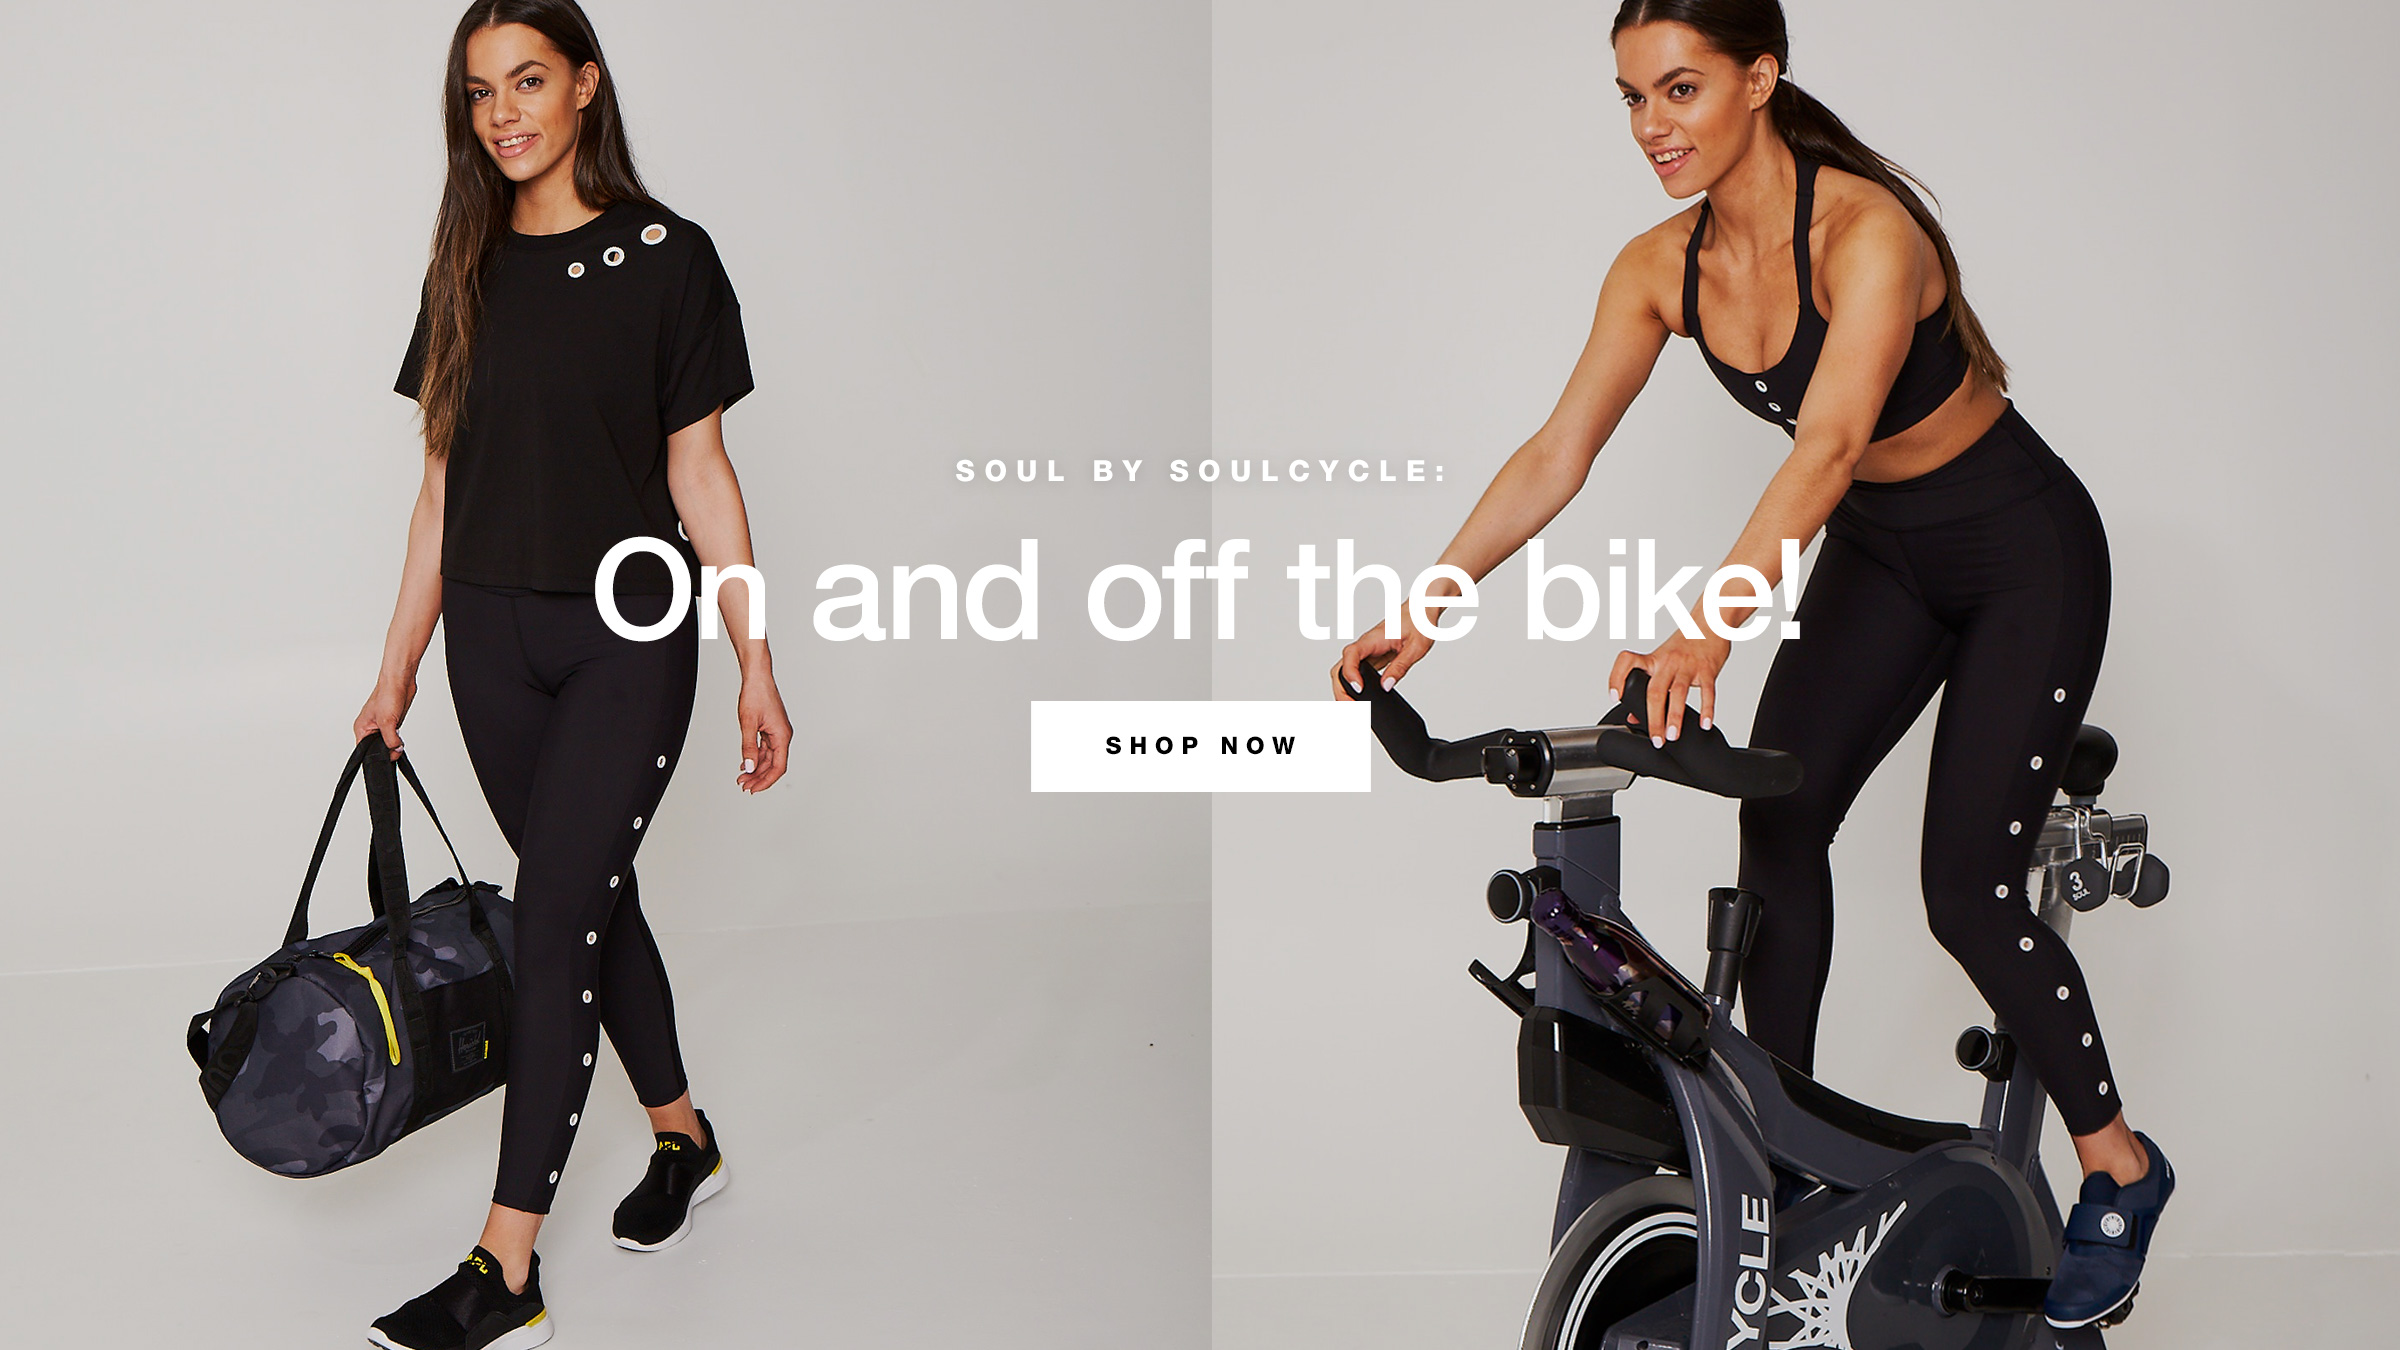 Mar Retail - Soul by SoulCycle